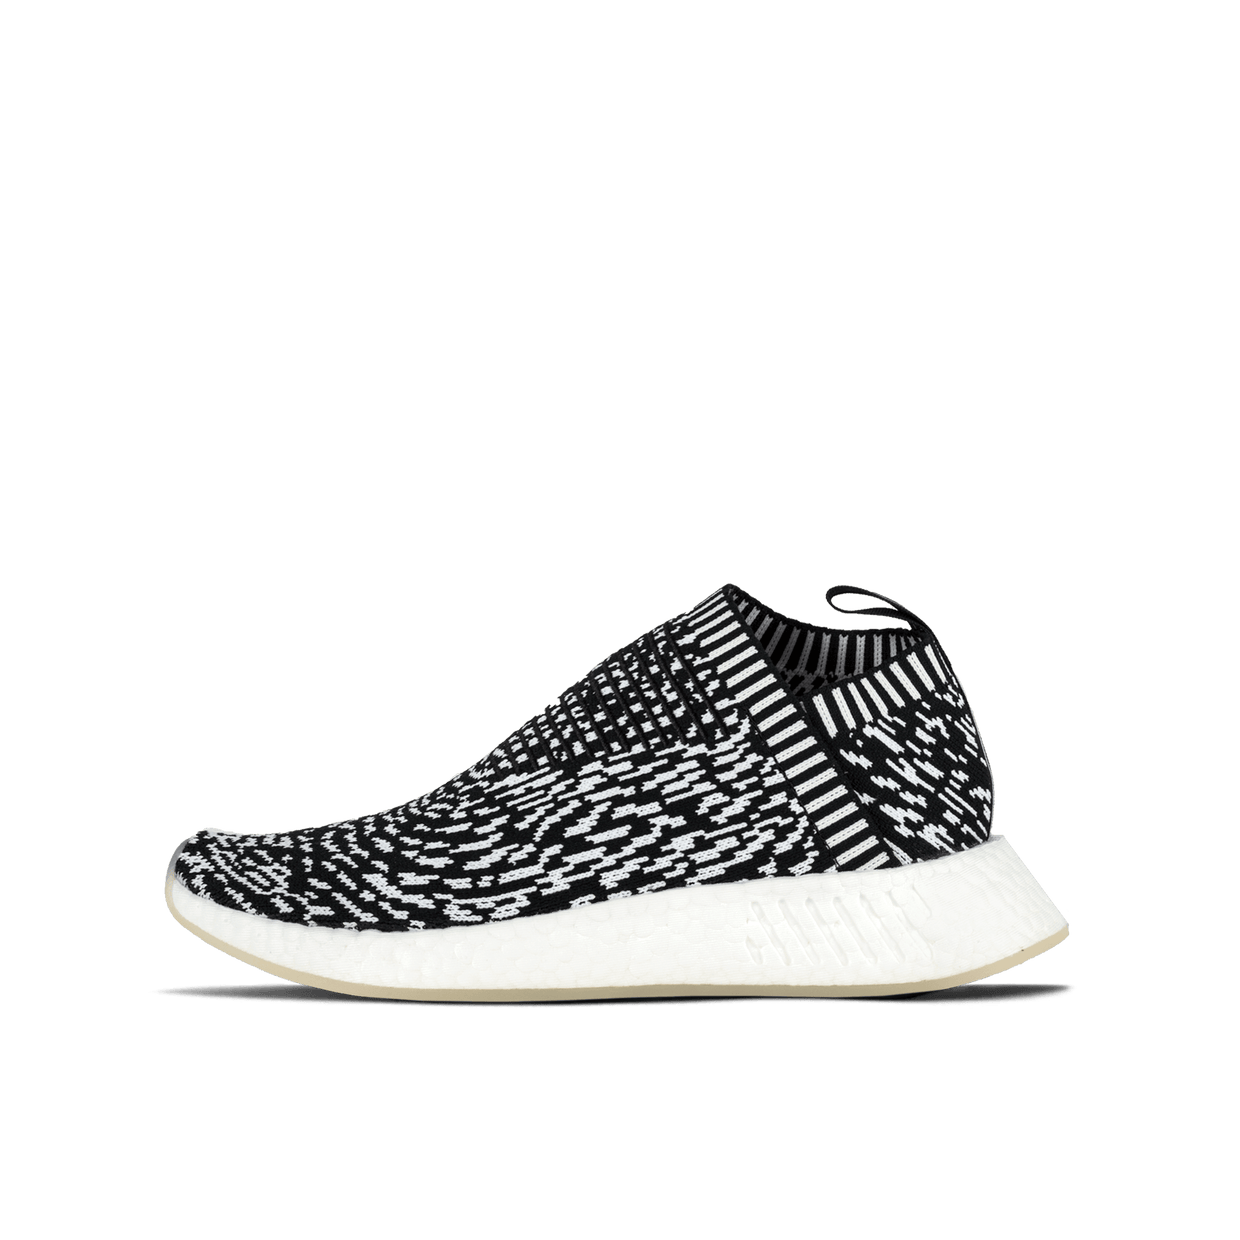 Nmd_ CS2 Pk - Black/White